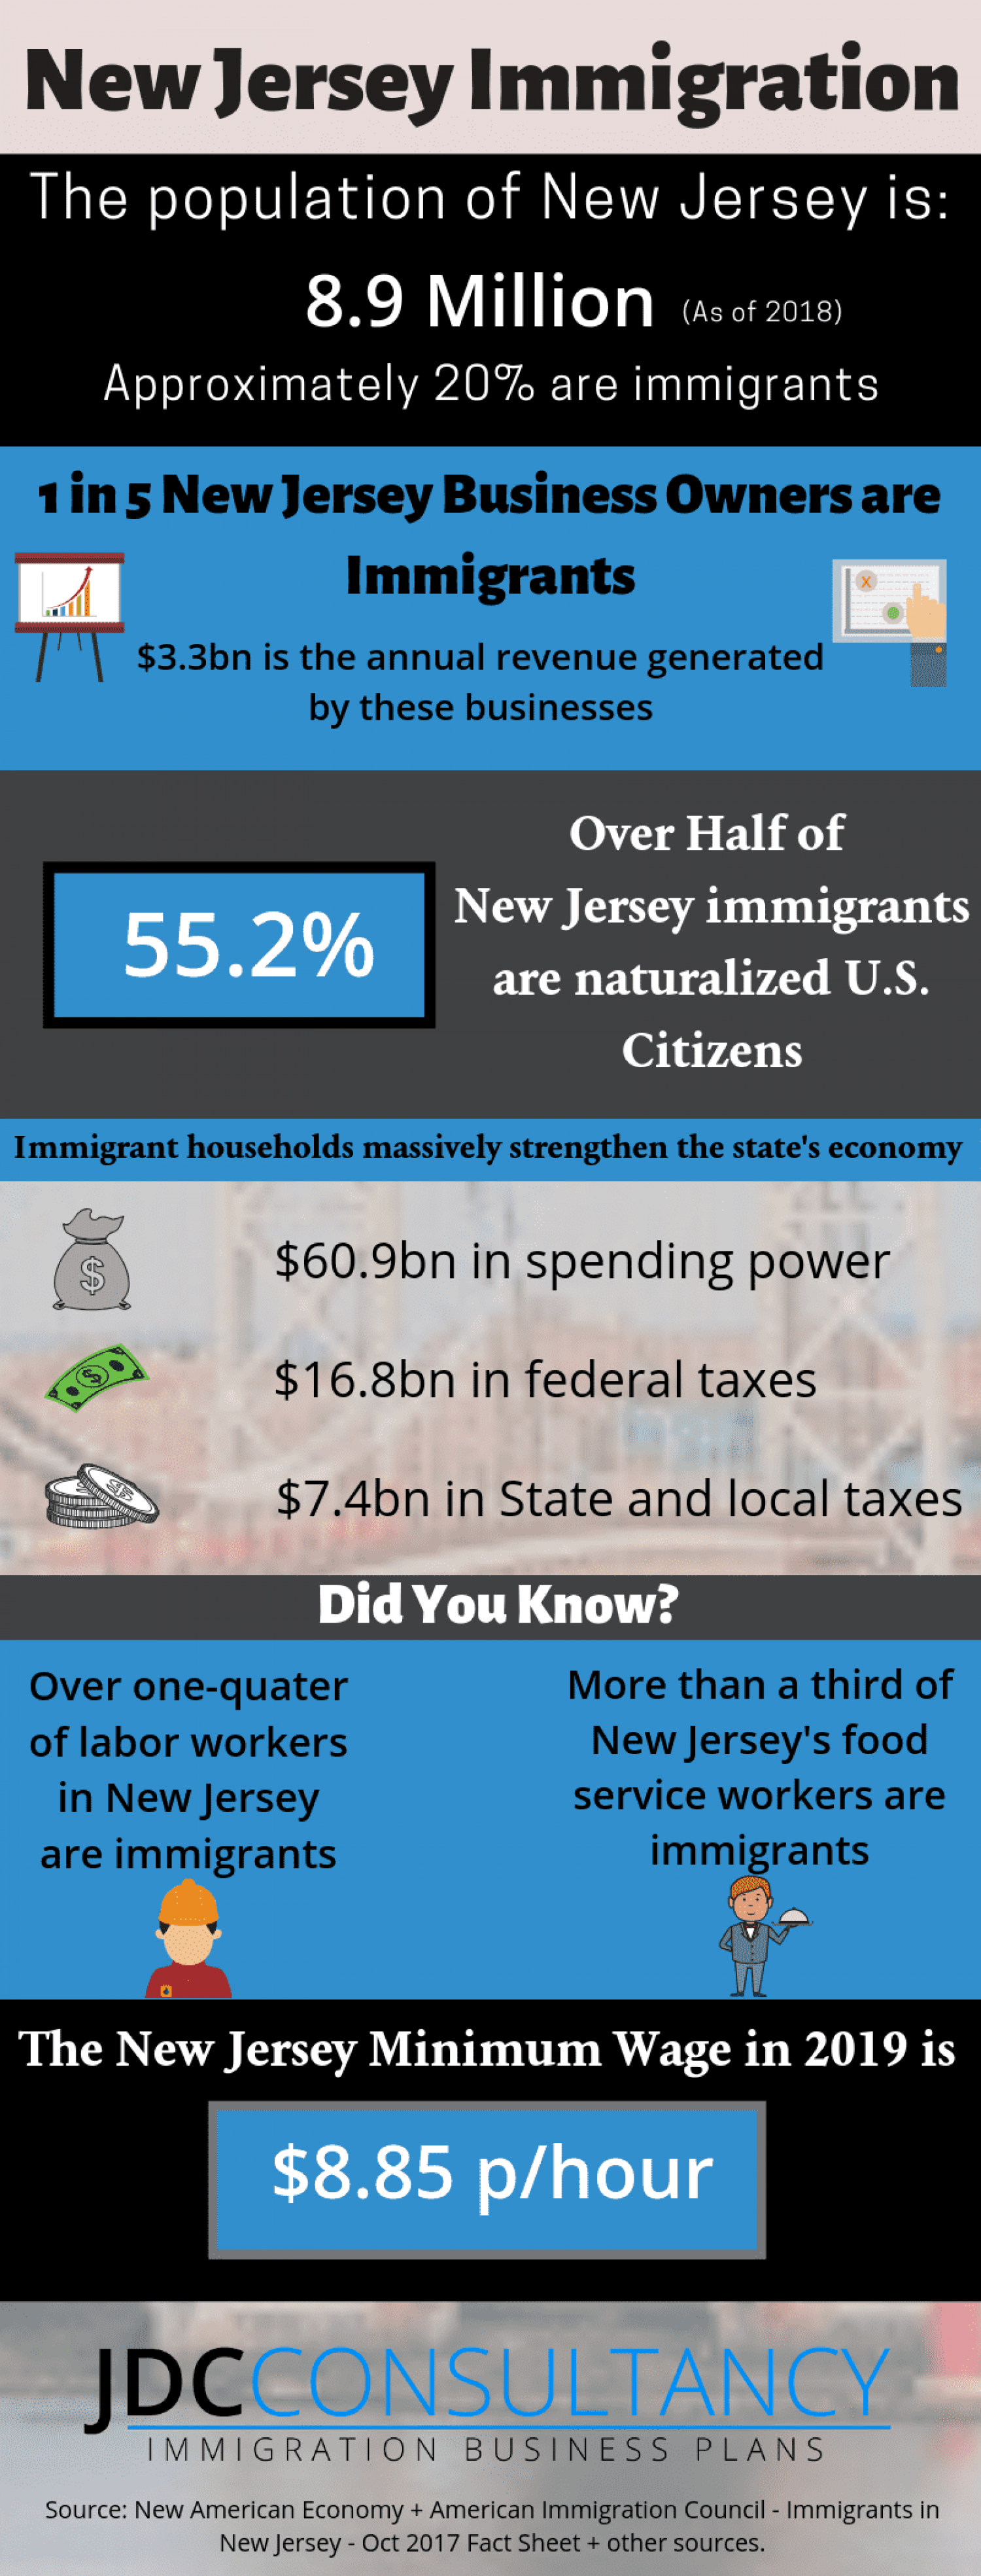 New Jersey Immigration Infographic